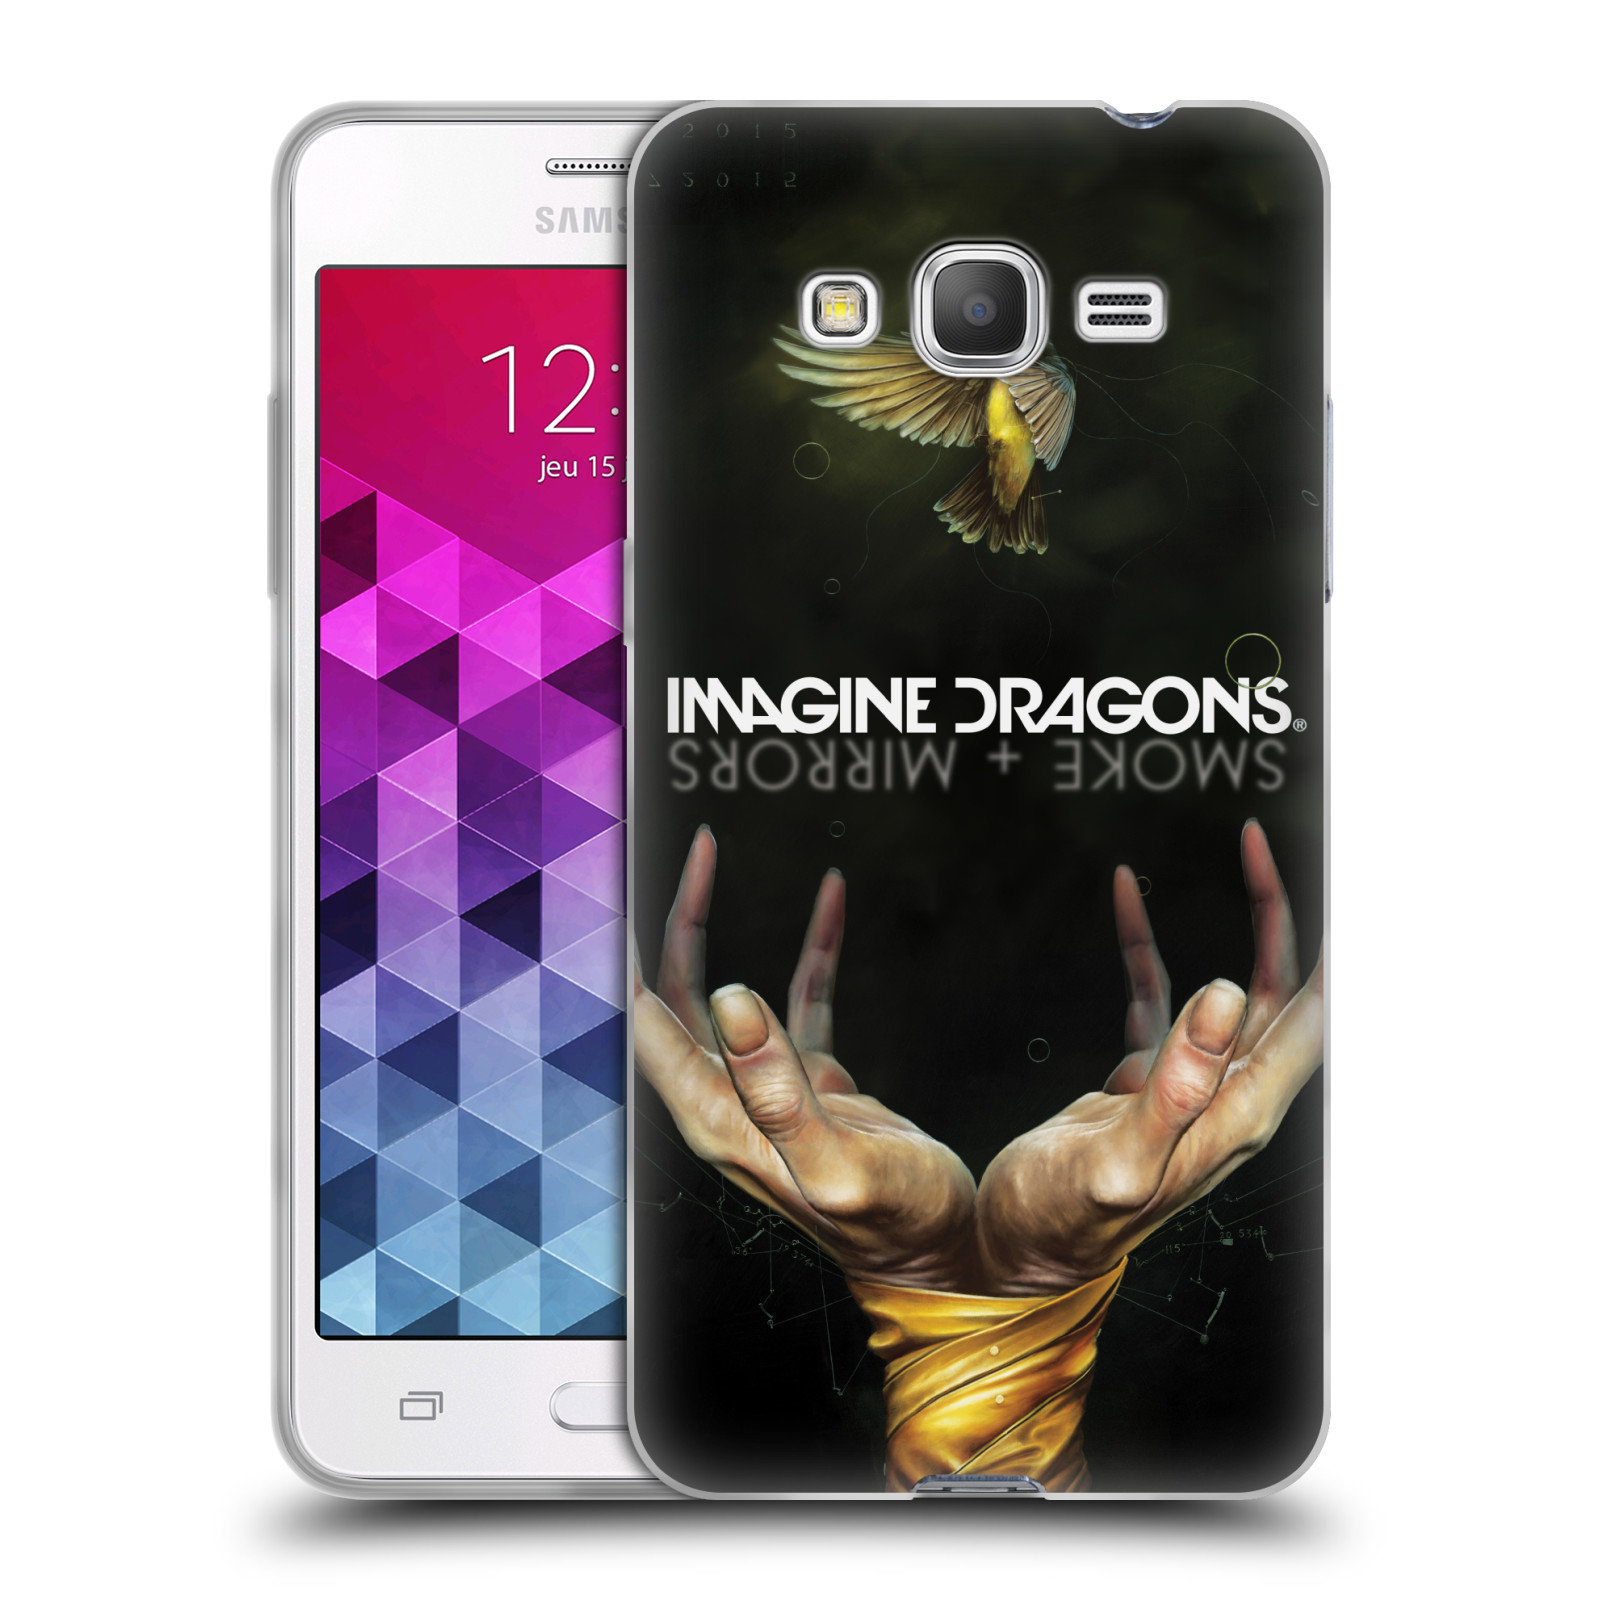 HEAD CASE silikonový obal na mobil Samsung Galaxy Grand Prime hudební skupina Imagine Dragons SMOKE and MIRRORS